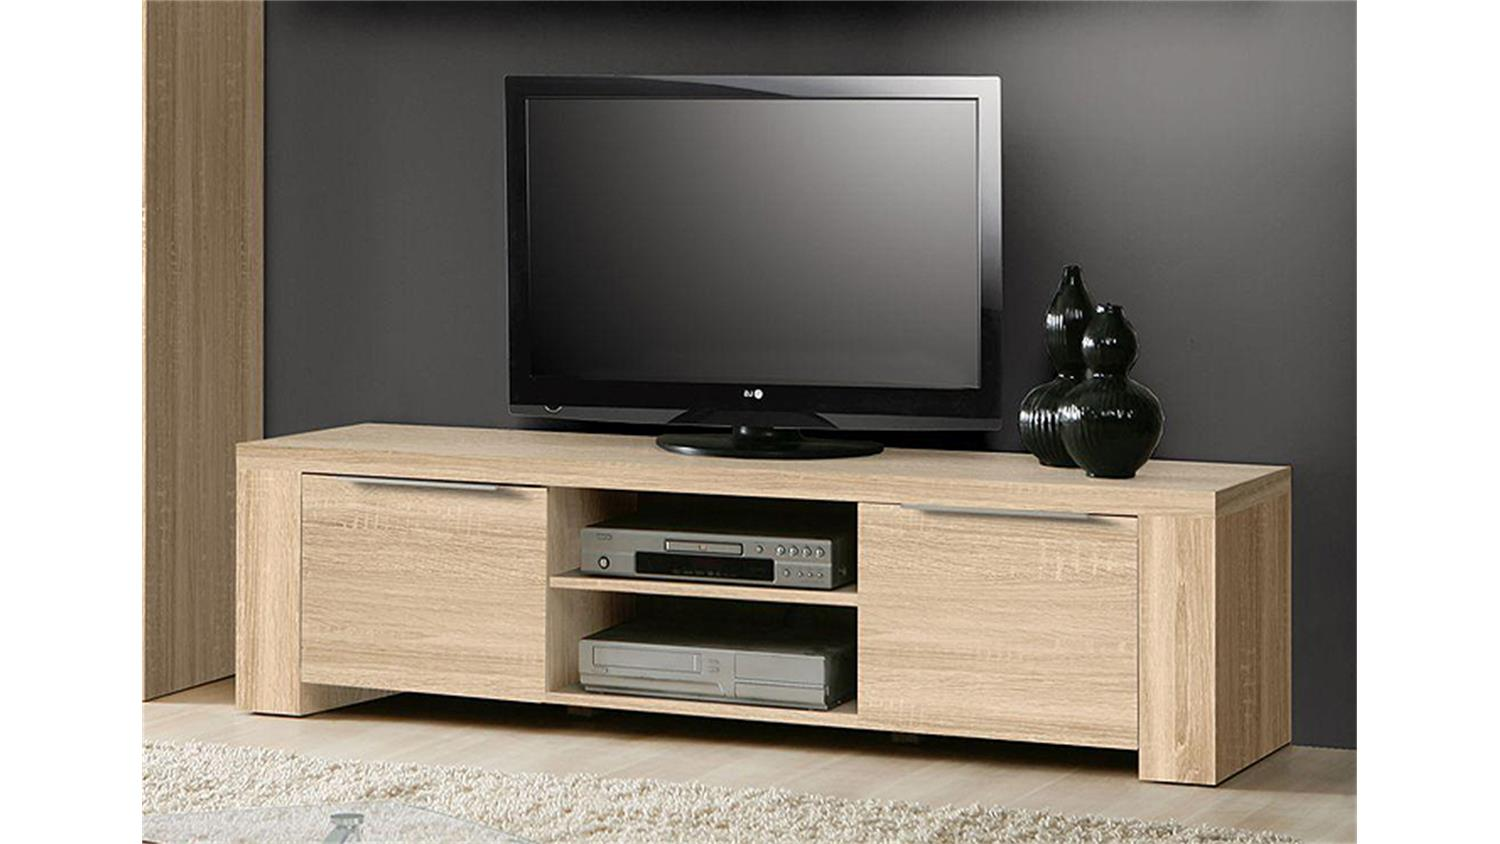 tv schrank calpe bestseller shop f r m bel und einrichtungen. Black Bedroom Furniture Sets. Home Design Ideas